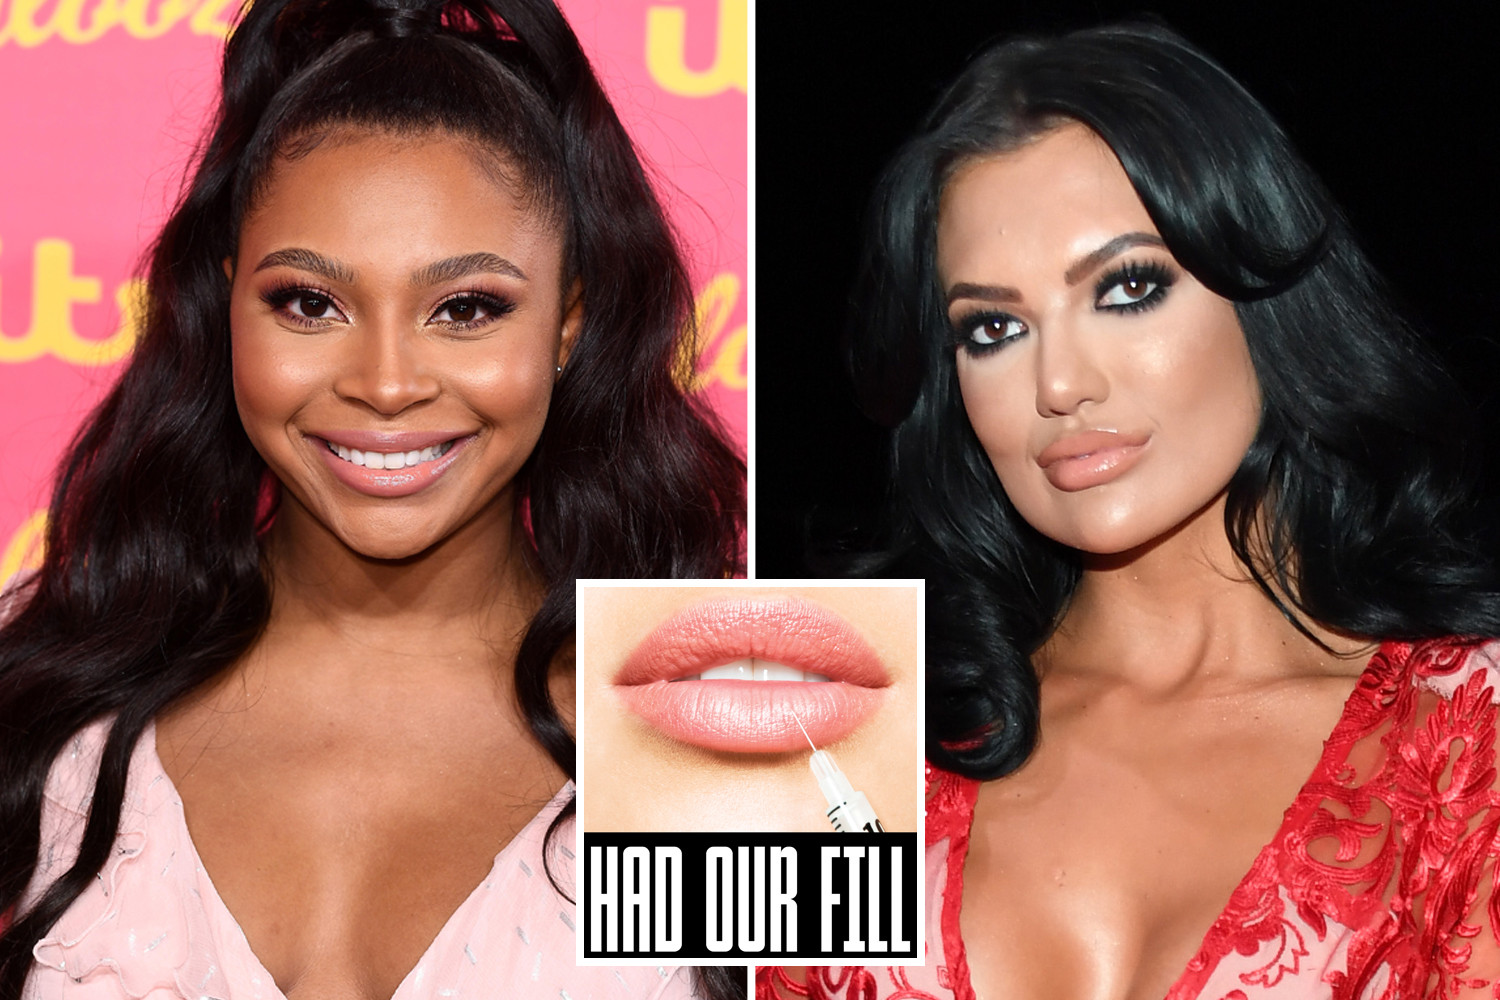 Love Island's Samira Mighty and Abbie Holborn from Geordie Shore are also in support of the campaign to raise awareness of the dangers of filler